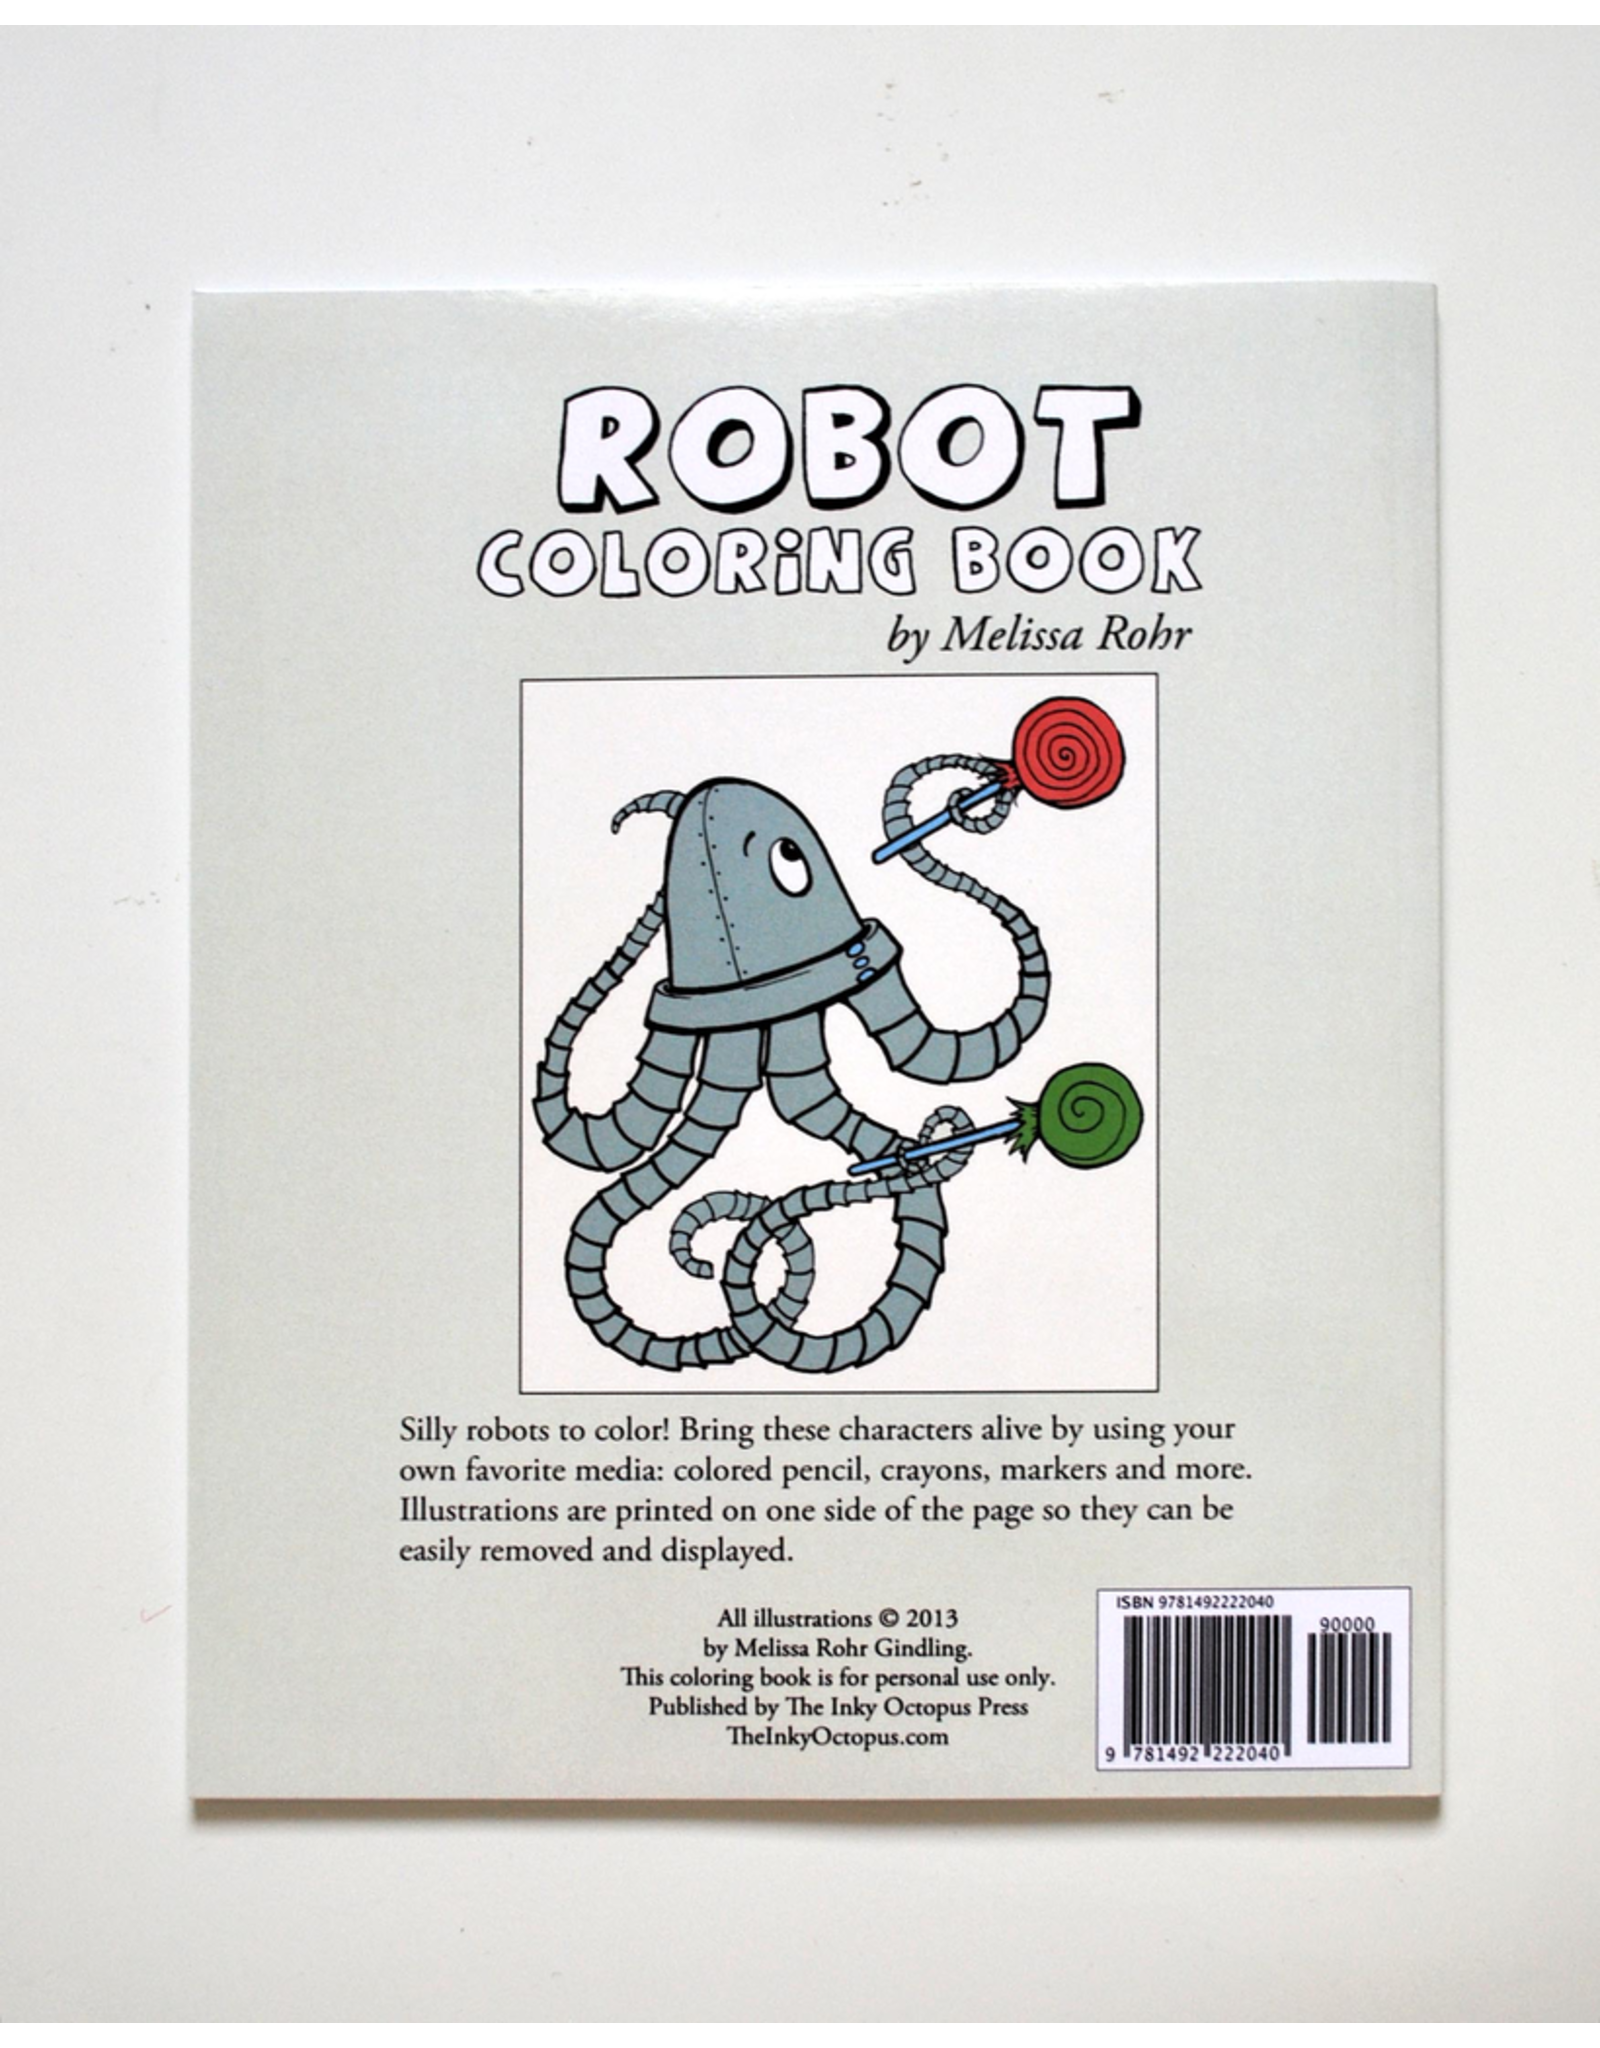 Melissa Rohr Gindling Robot Coloring Book by Melissa Rohr Gindling